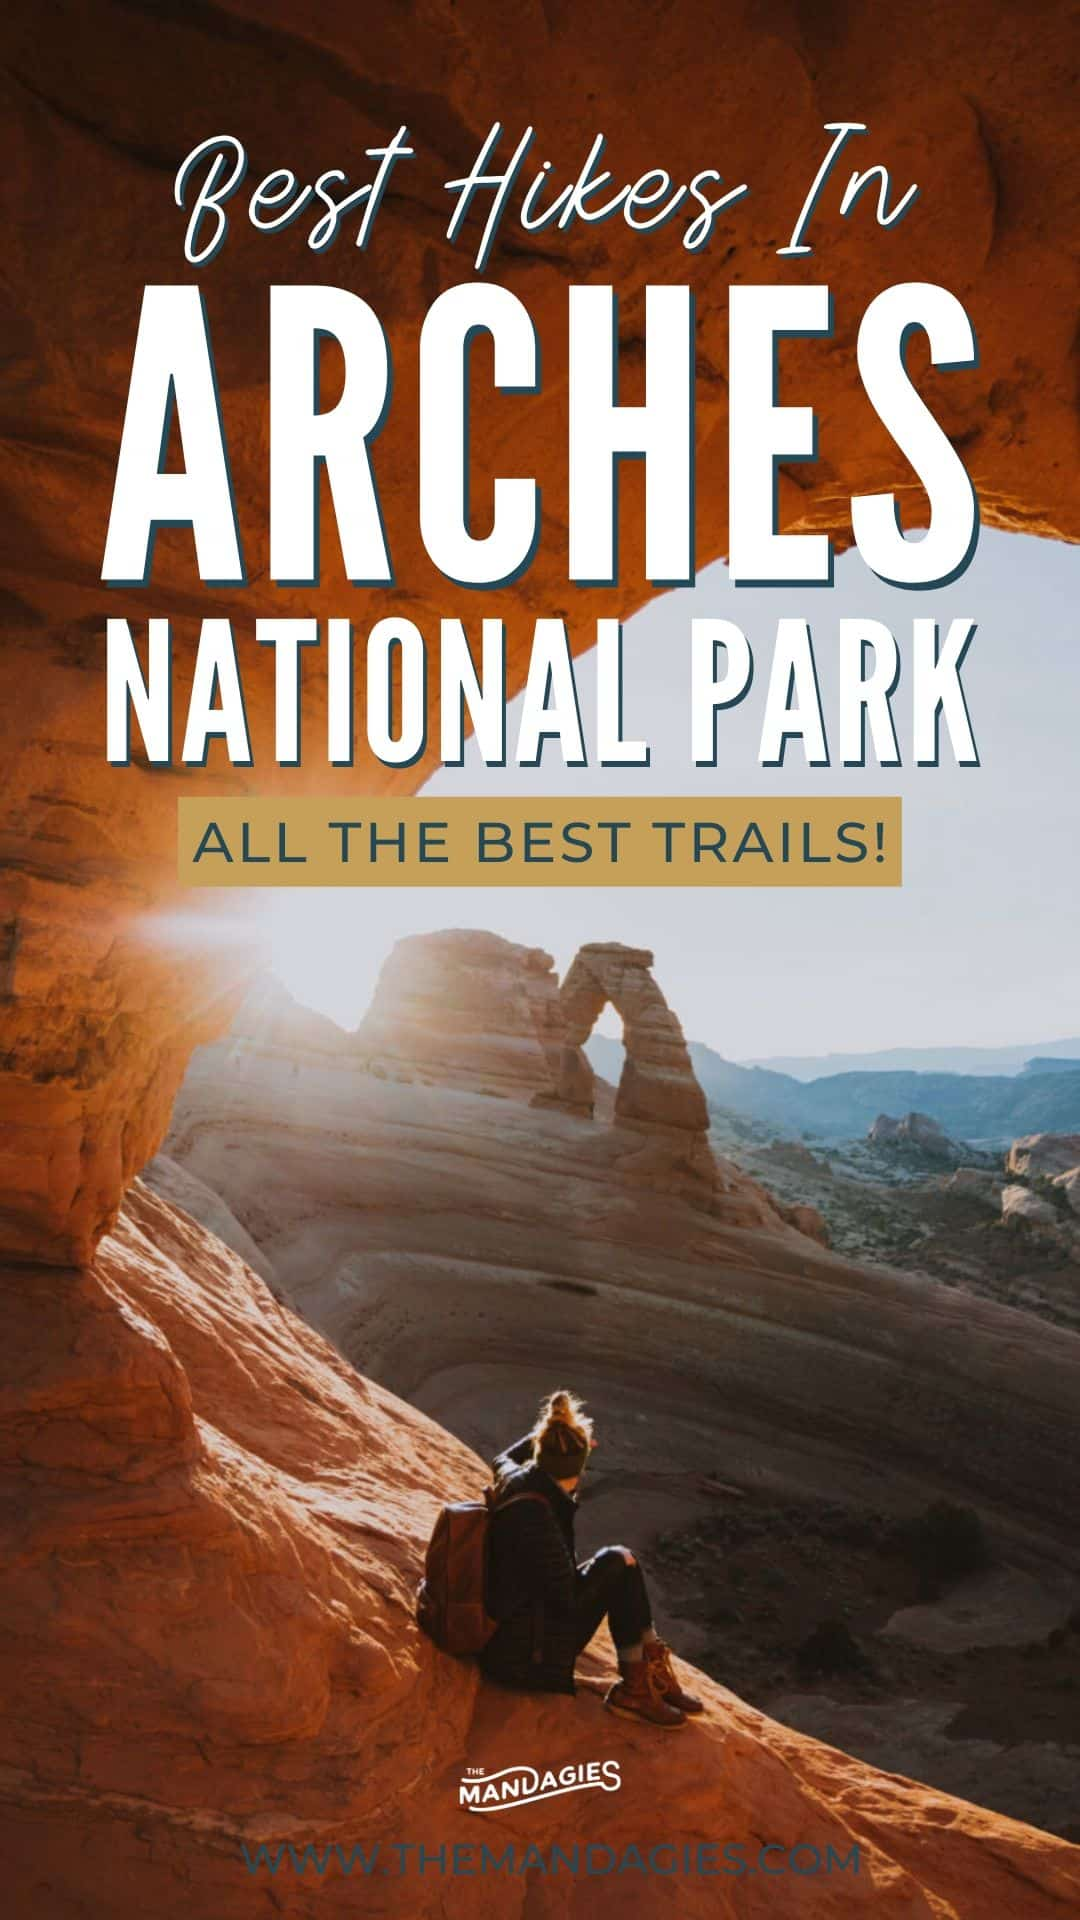 Looking for the best hikes in Arches National Park? Look no further! We're sharing the best hiking trails in Arches, including Delicate Arch, Landscape Arch, Turret Arch. The Windows Loop, Devil's Garden Loop, and so much more! Save this post for your next trip to Moab, Utah! #utah #moab #arches #archesnationalpark #delicatearch #nationalparks #hiking #photography #desert